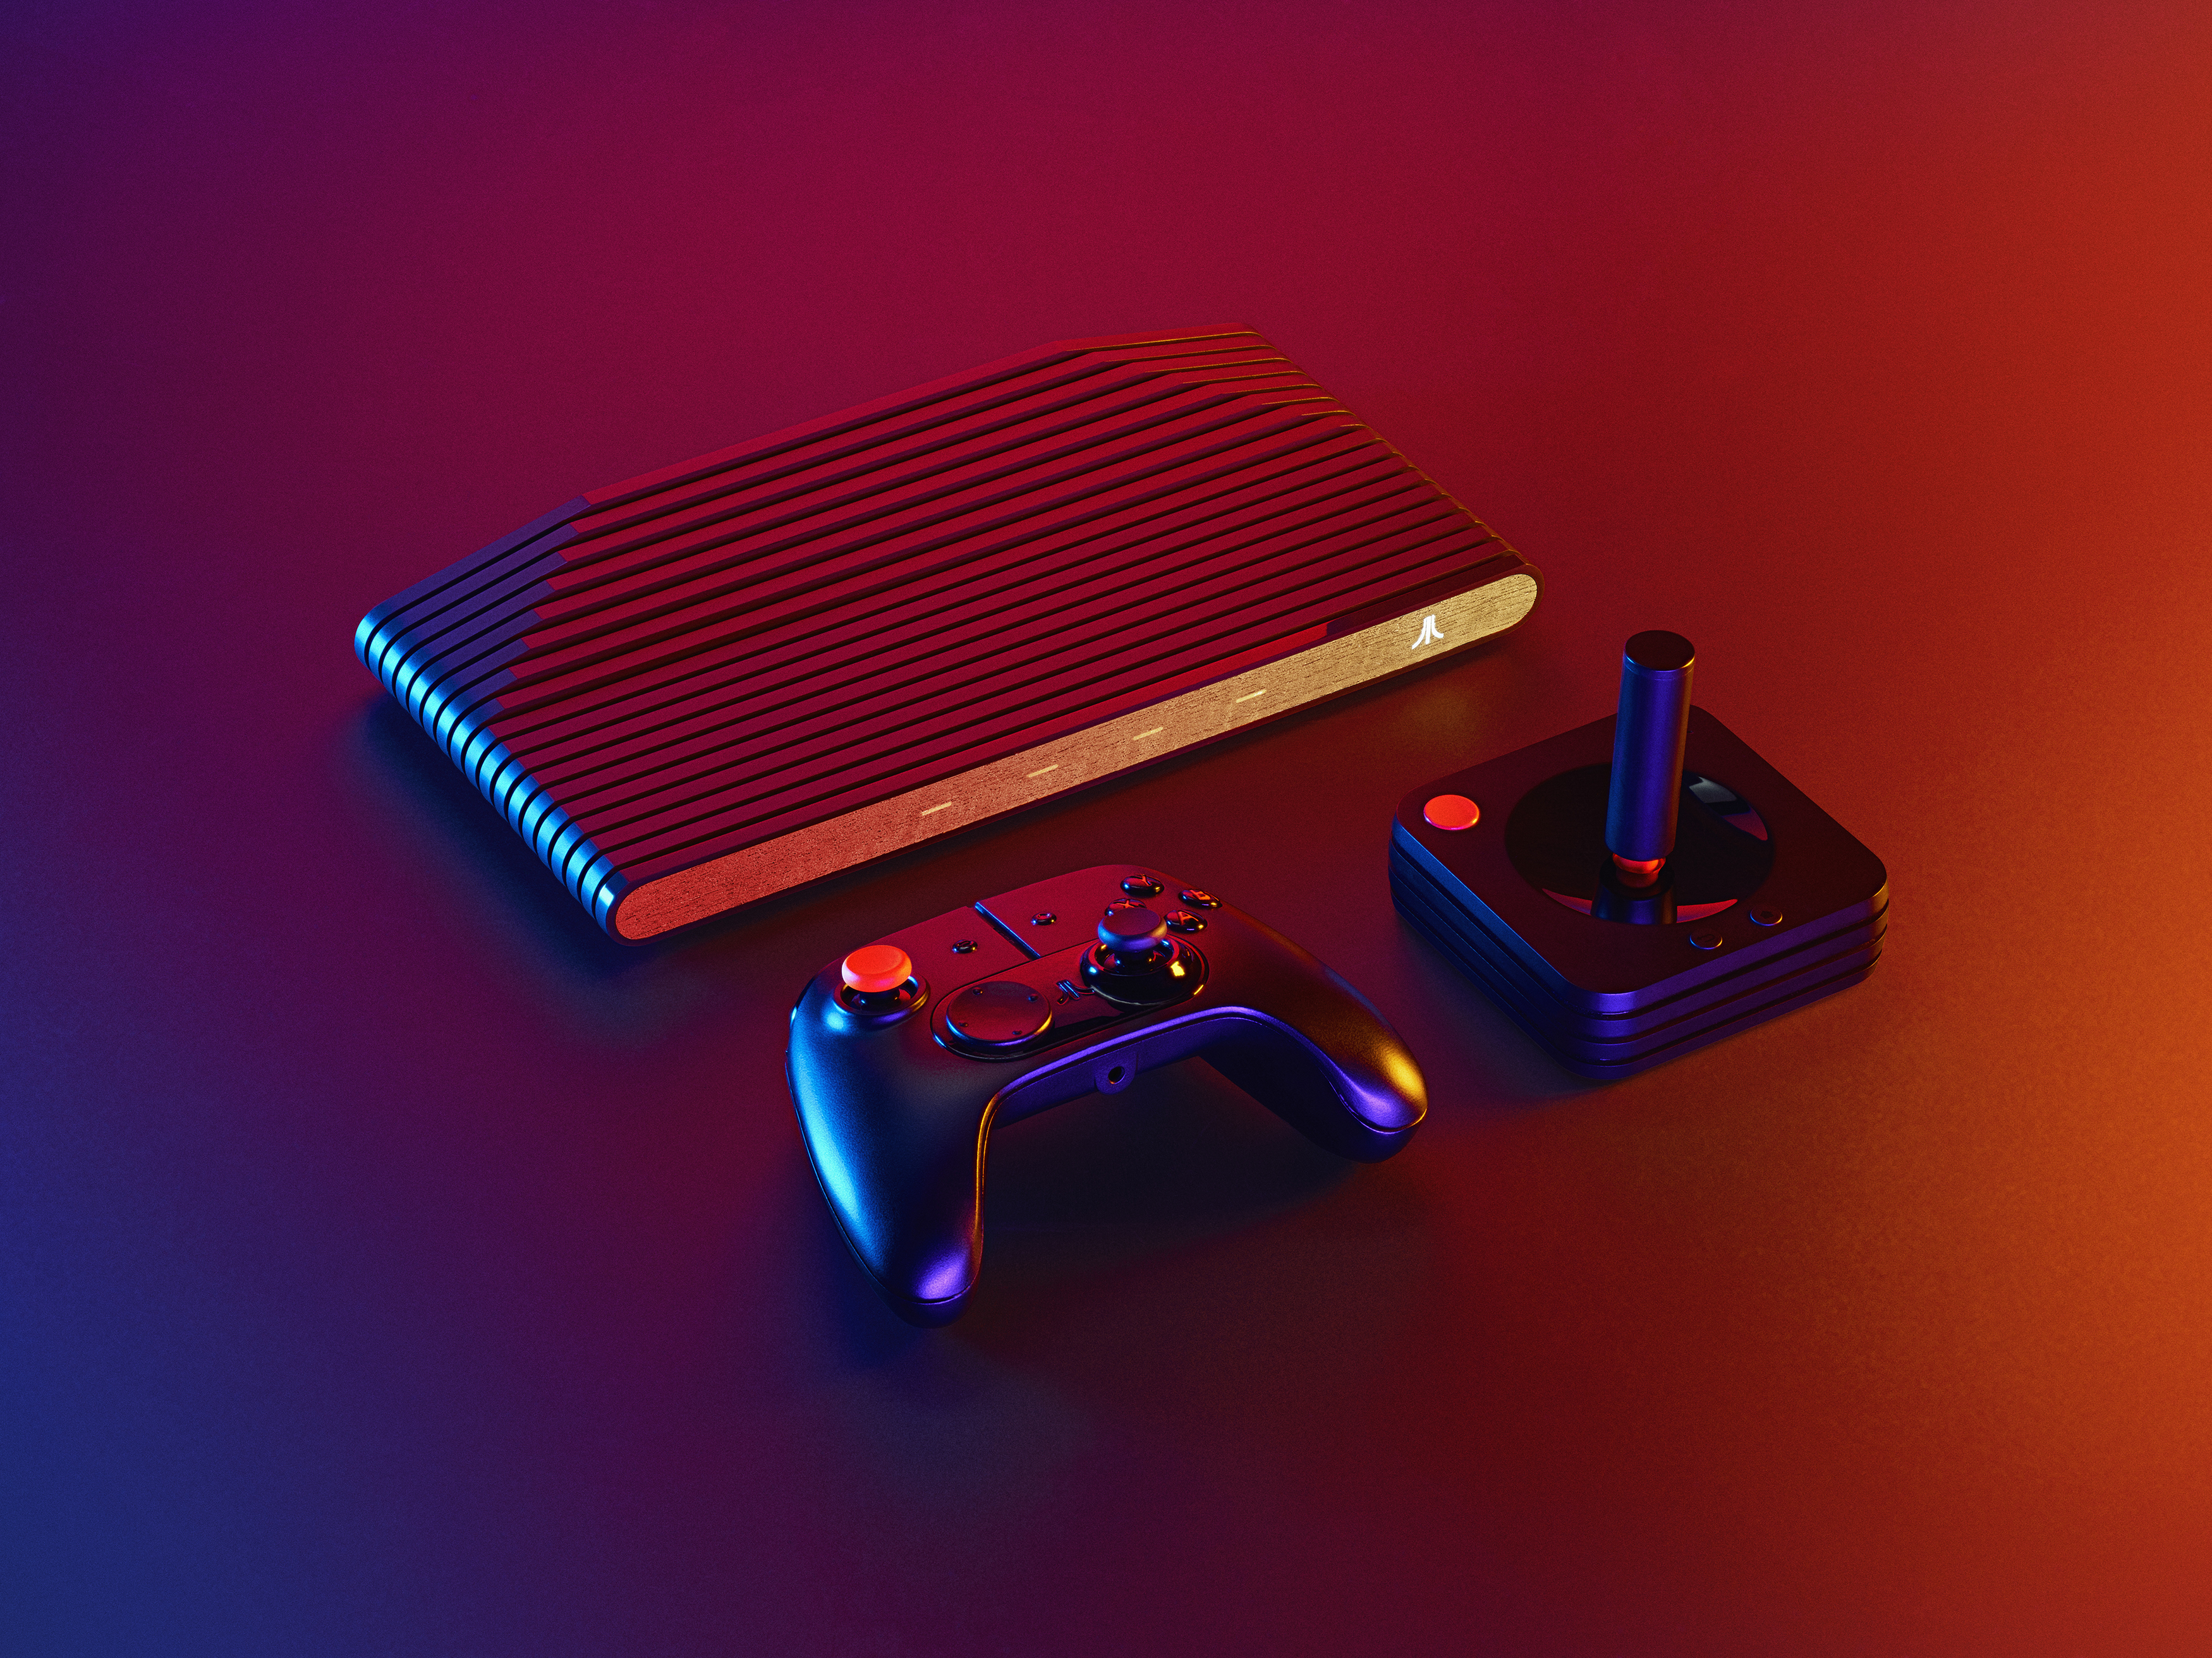 The Atari VCS Retro Console Is Now Available Via Retail